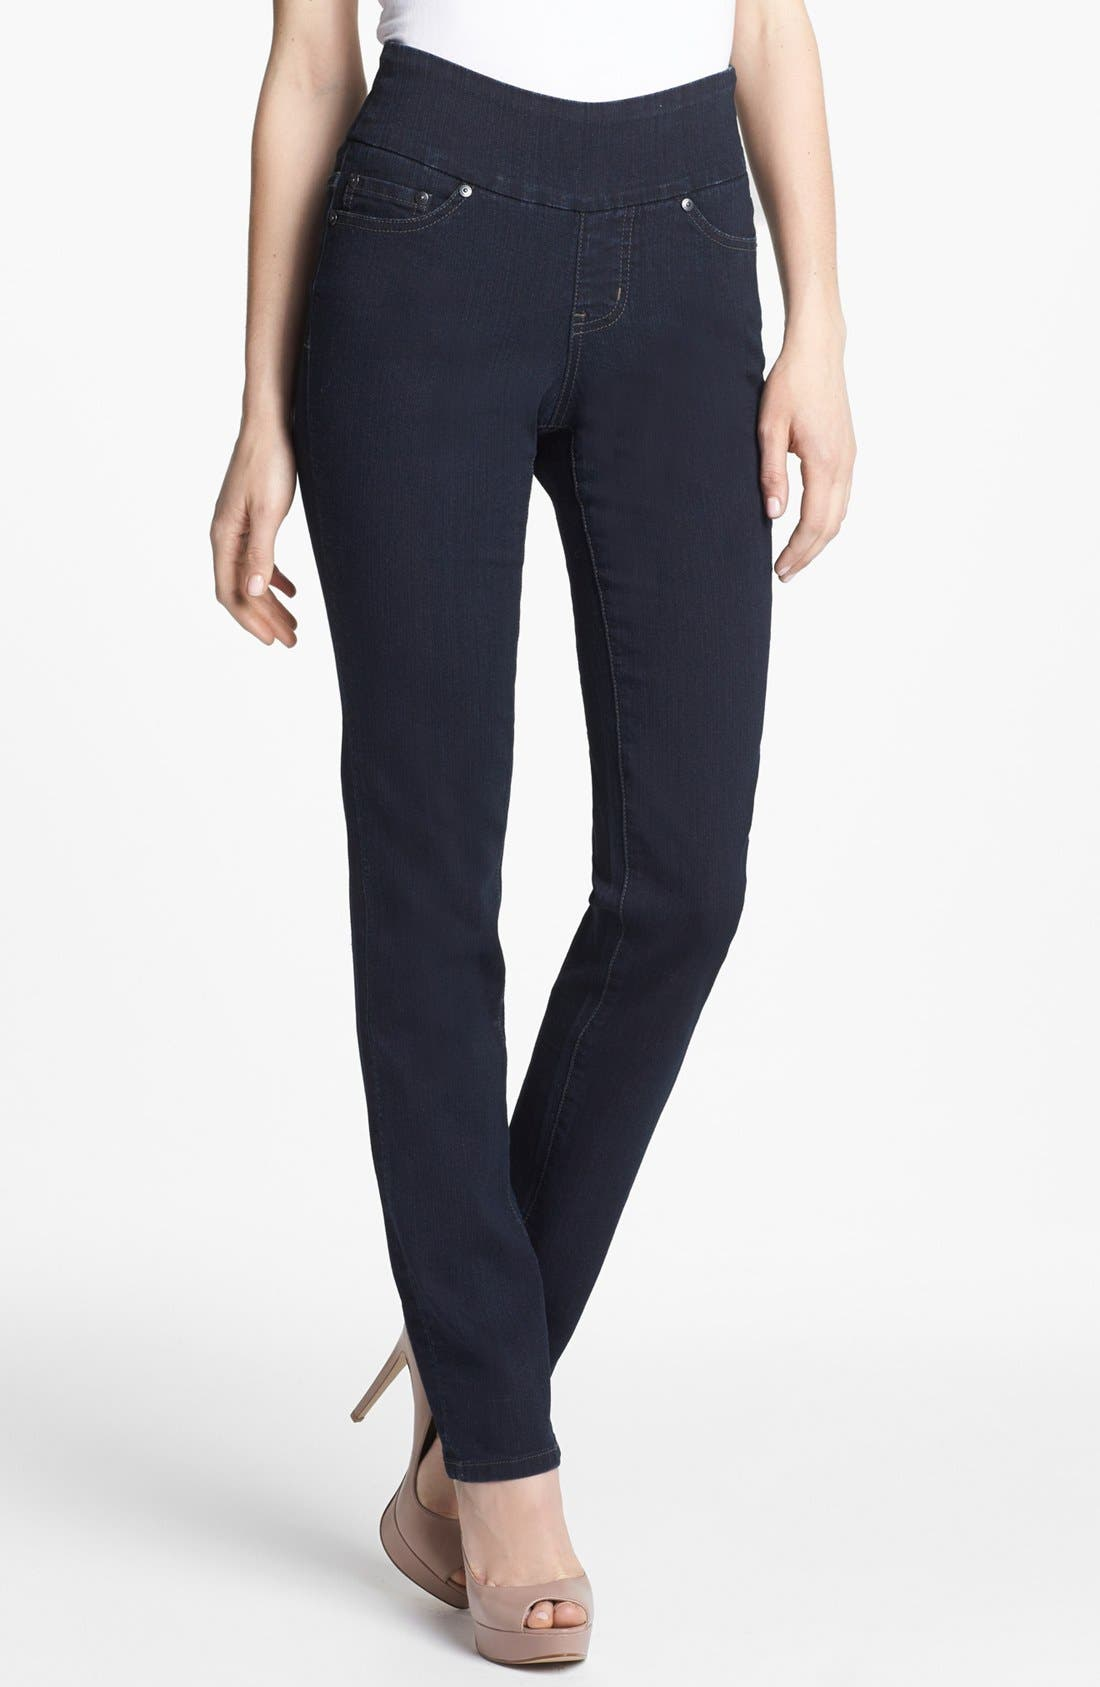 JAG JEANS 'Peri' Pull-On Straight Leg Jeans